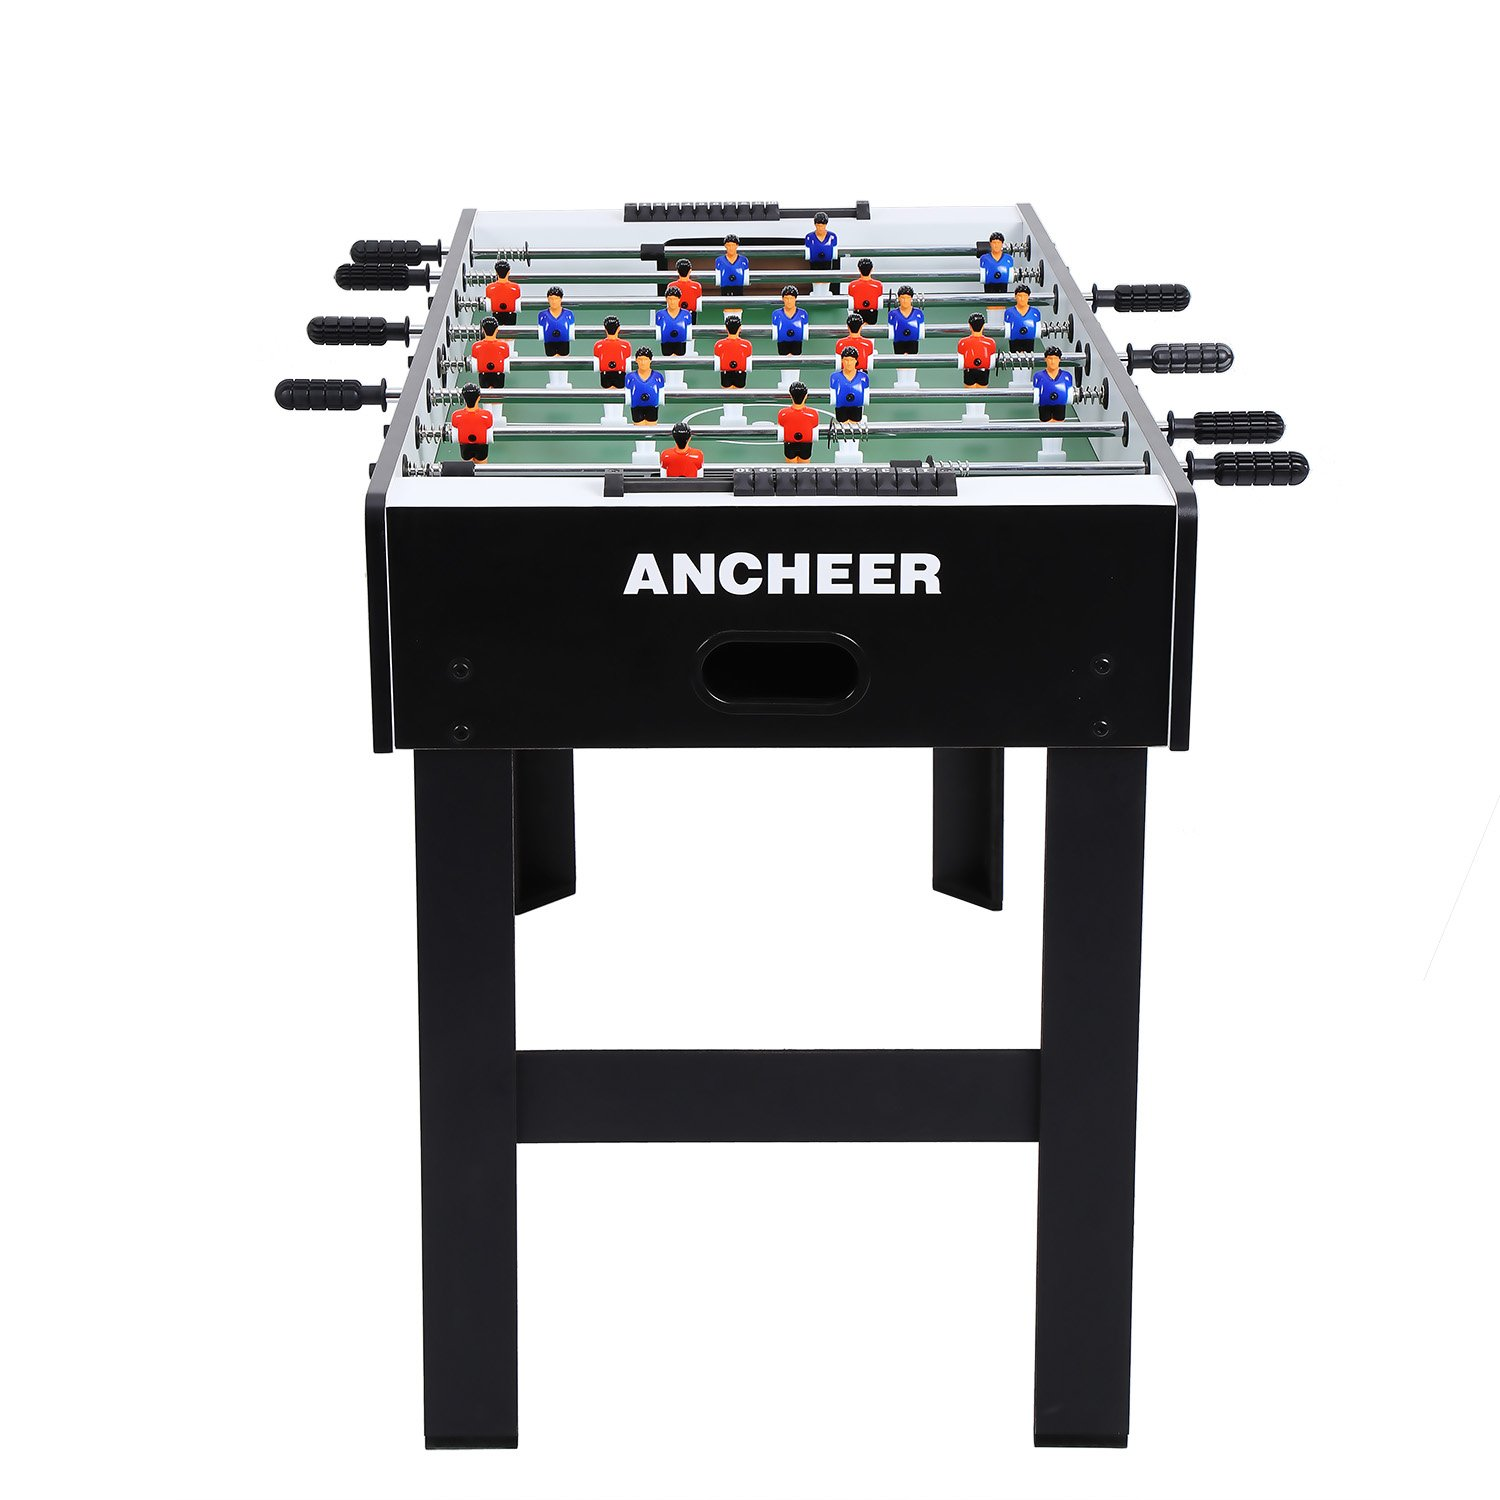 ANCHEER 48'' Foosball Table Soccer Table Arcade Game Room Football Table Sports Game for Kids& Adults- Indoor&Outdoor by ANCHEER (Image #6)